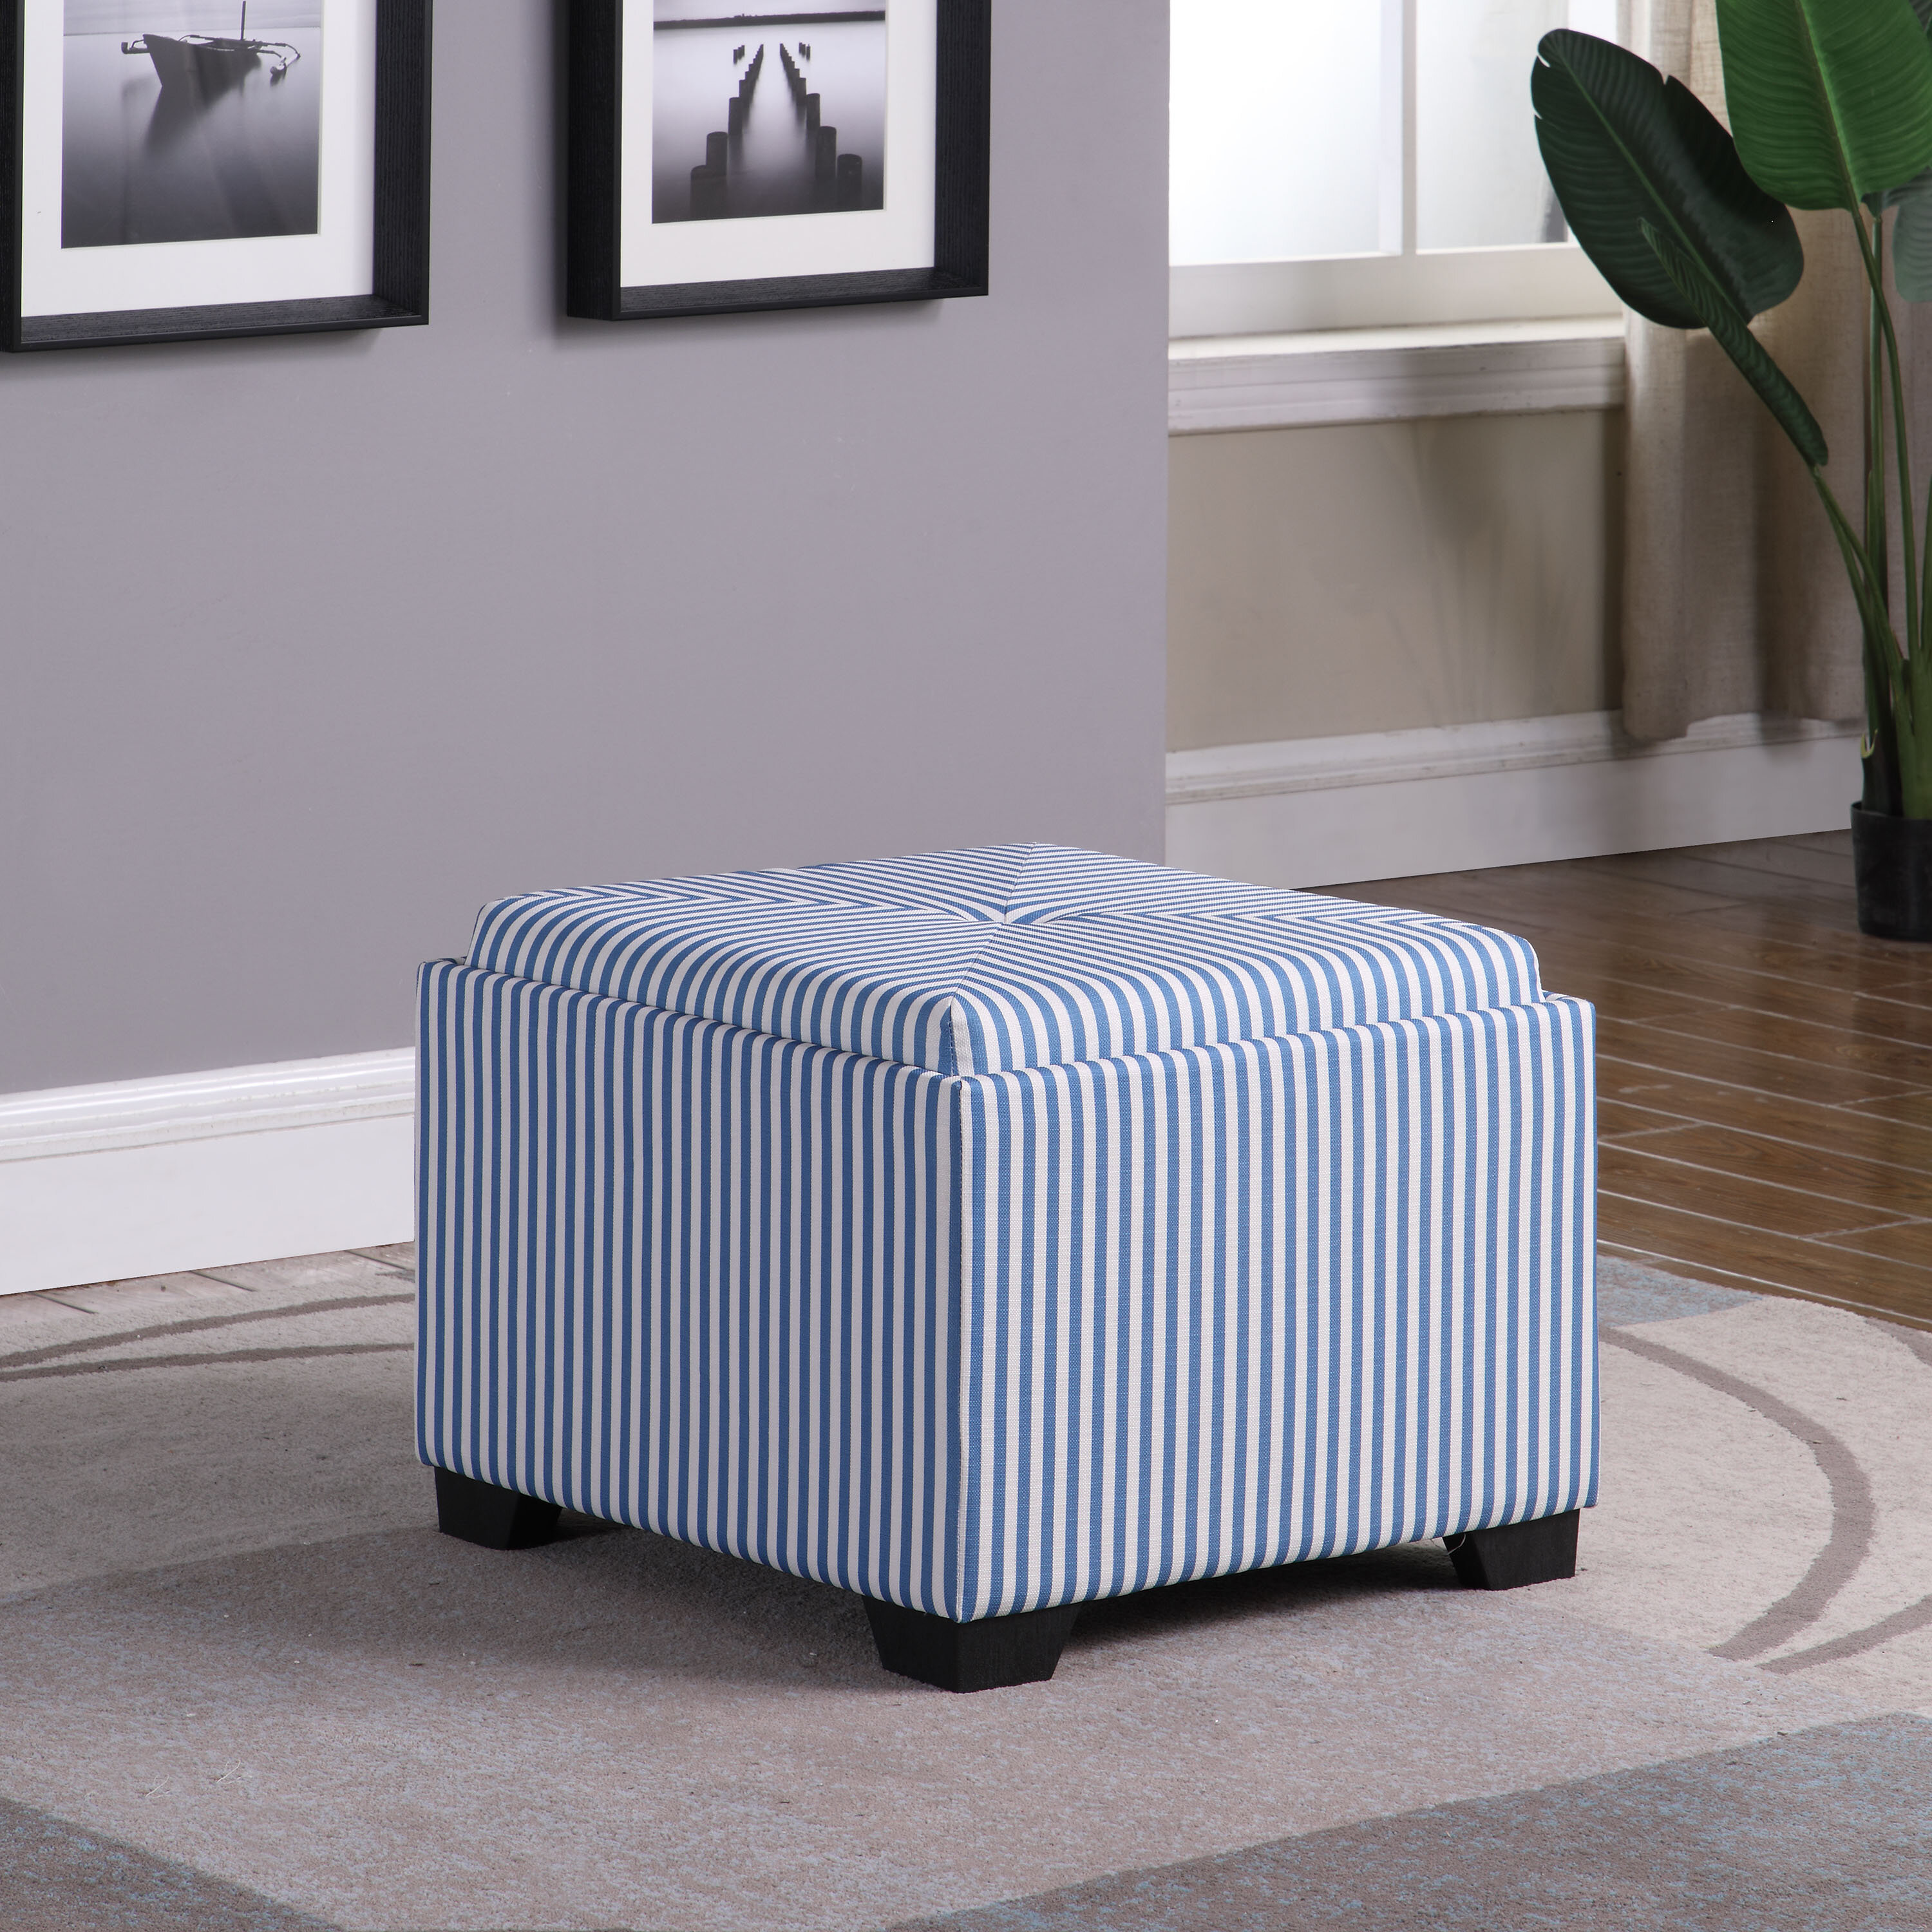 Magnificent Nathan Stripes Single Tufted Storage Ottoman Camellatalisay Diy Chair Ideas Camellatalisaycom